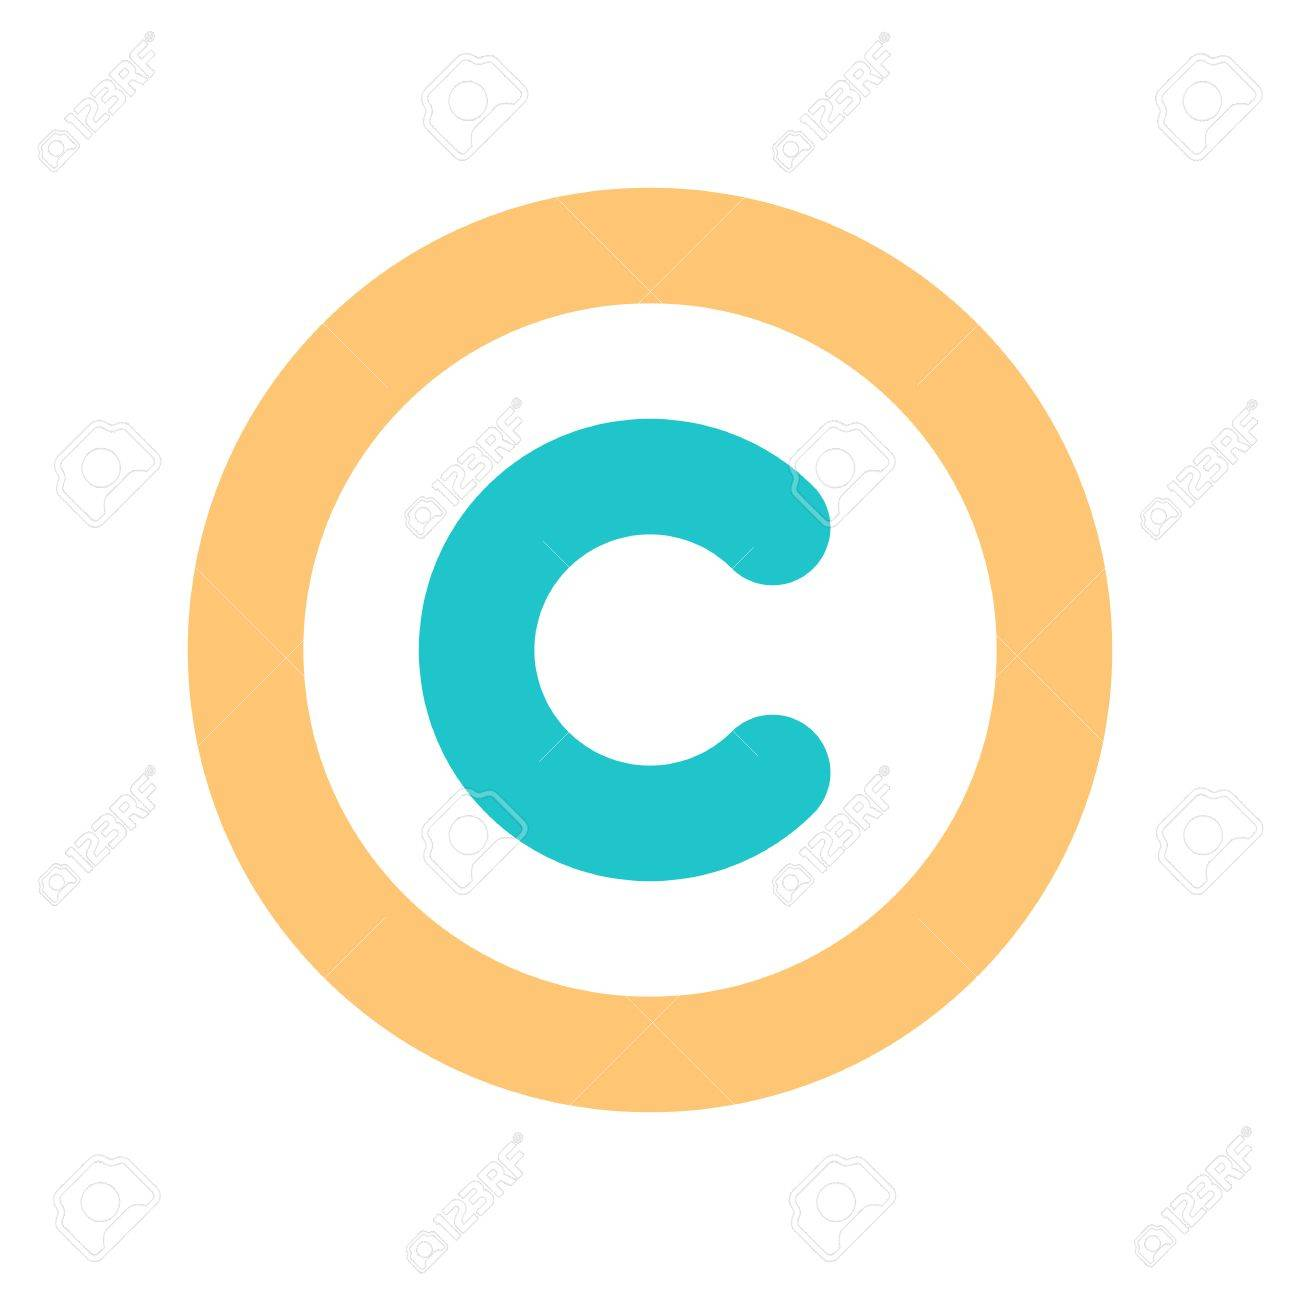 The Copyright Symbol A Circled Capital Letter C Flat Style